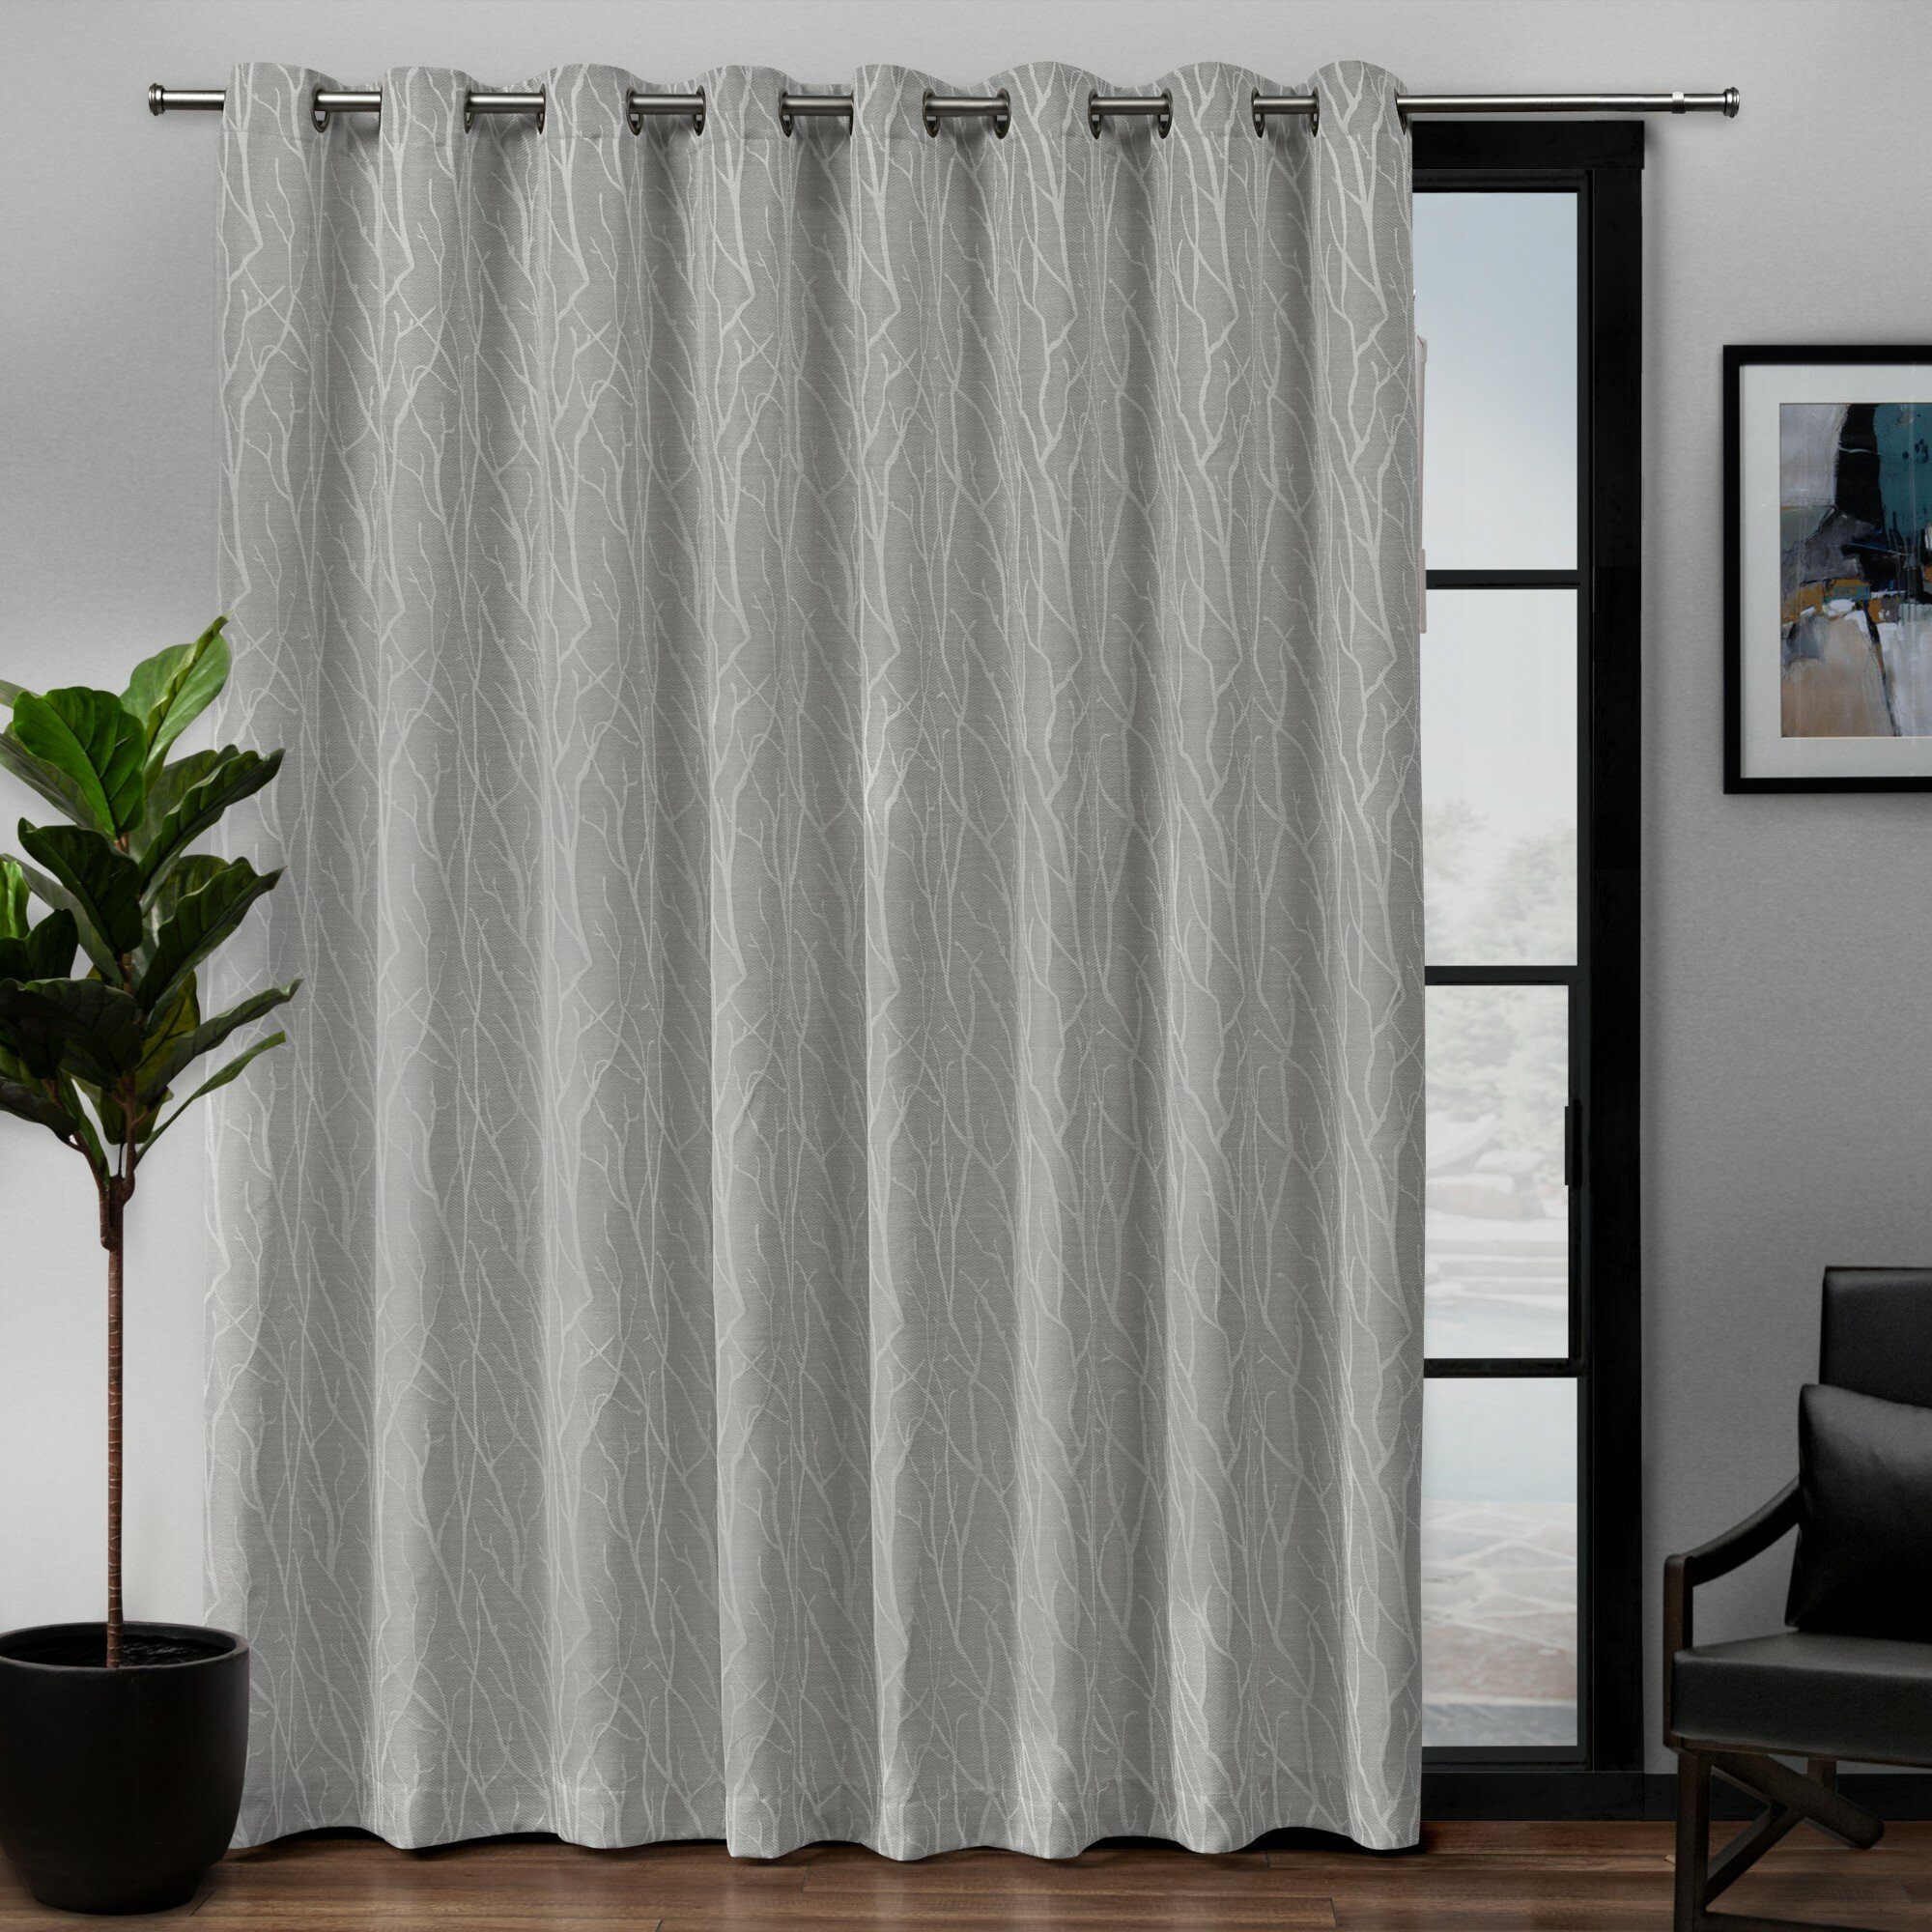 Prower Patio Woven Blackout Thermal Grommet Single Curtain Panel In Embossed Thermal Weaved Blackout Grommet Drapery Curtains (View 12 of 20)